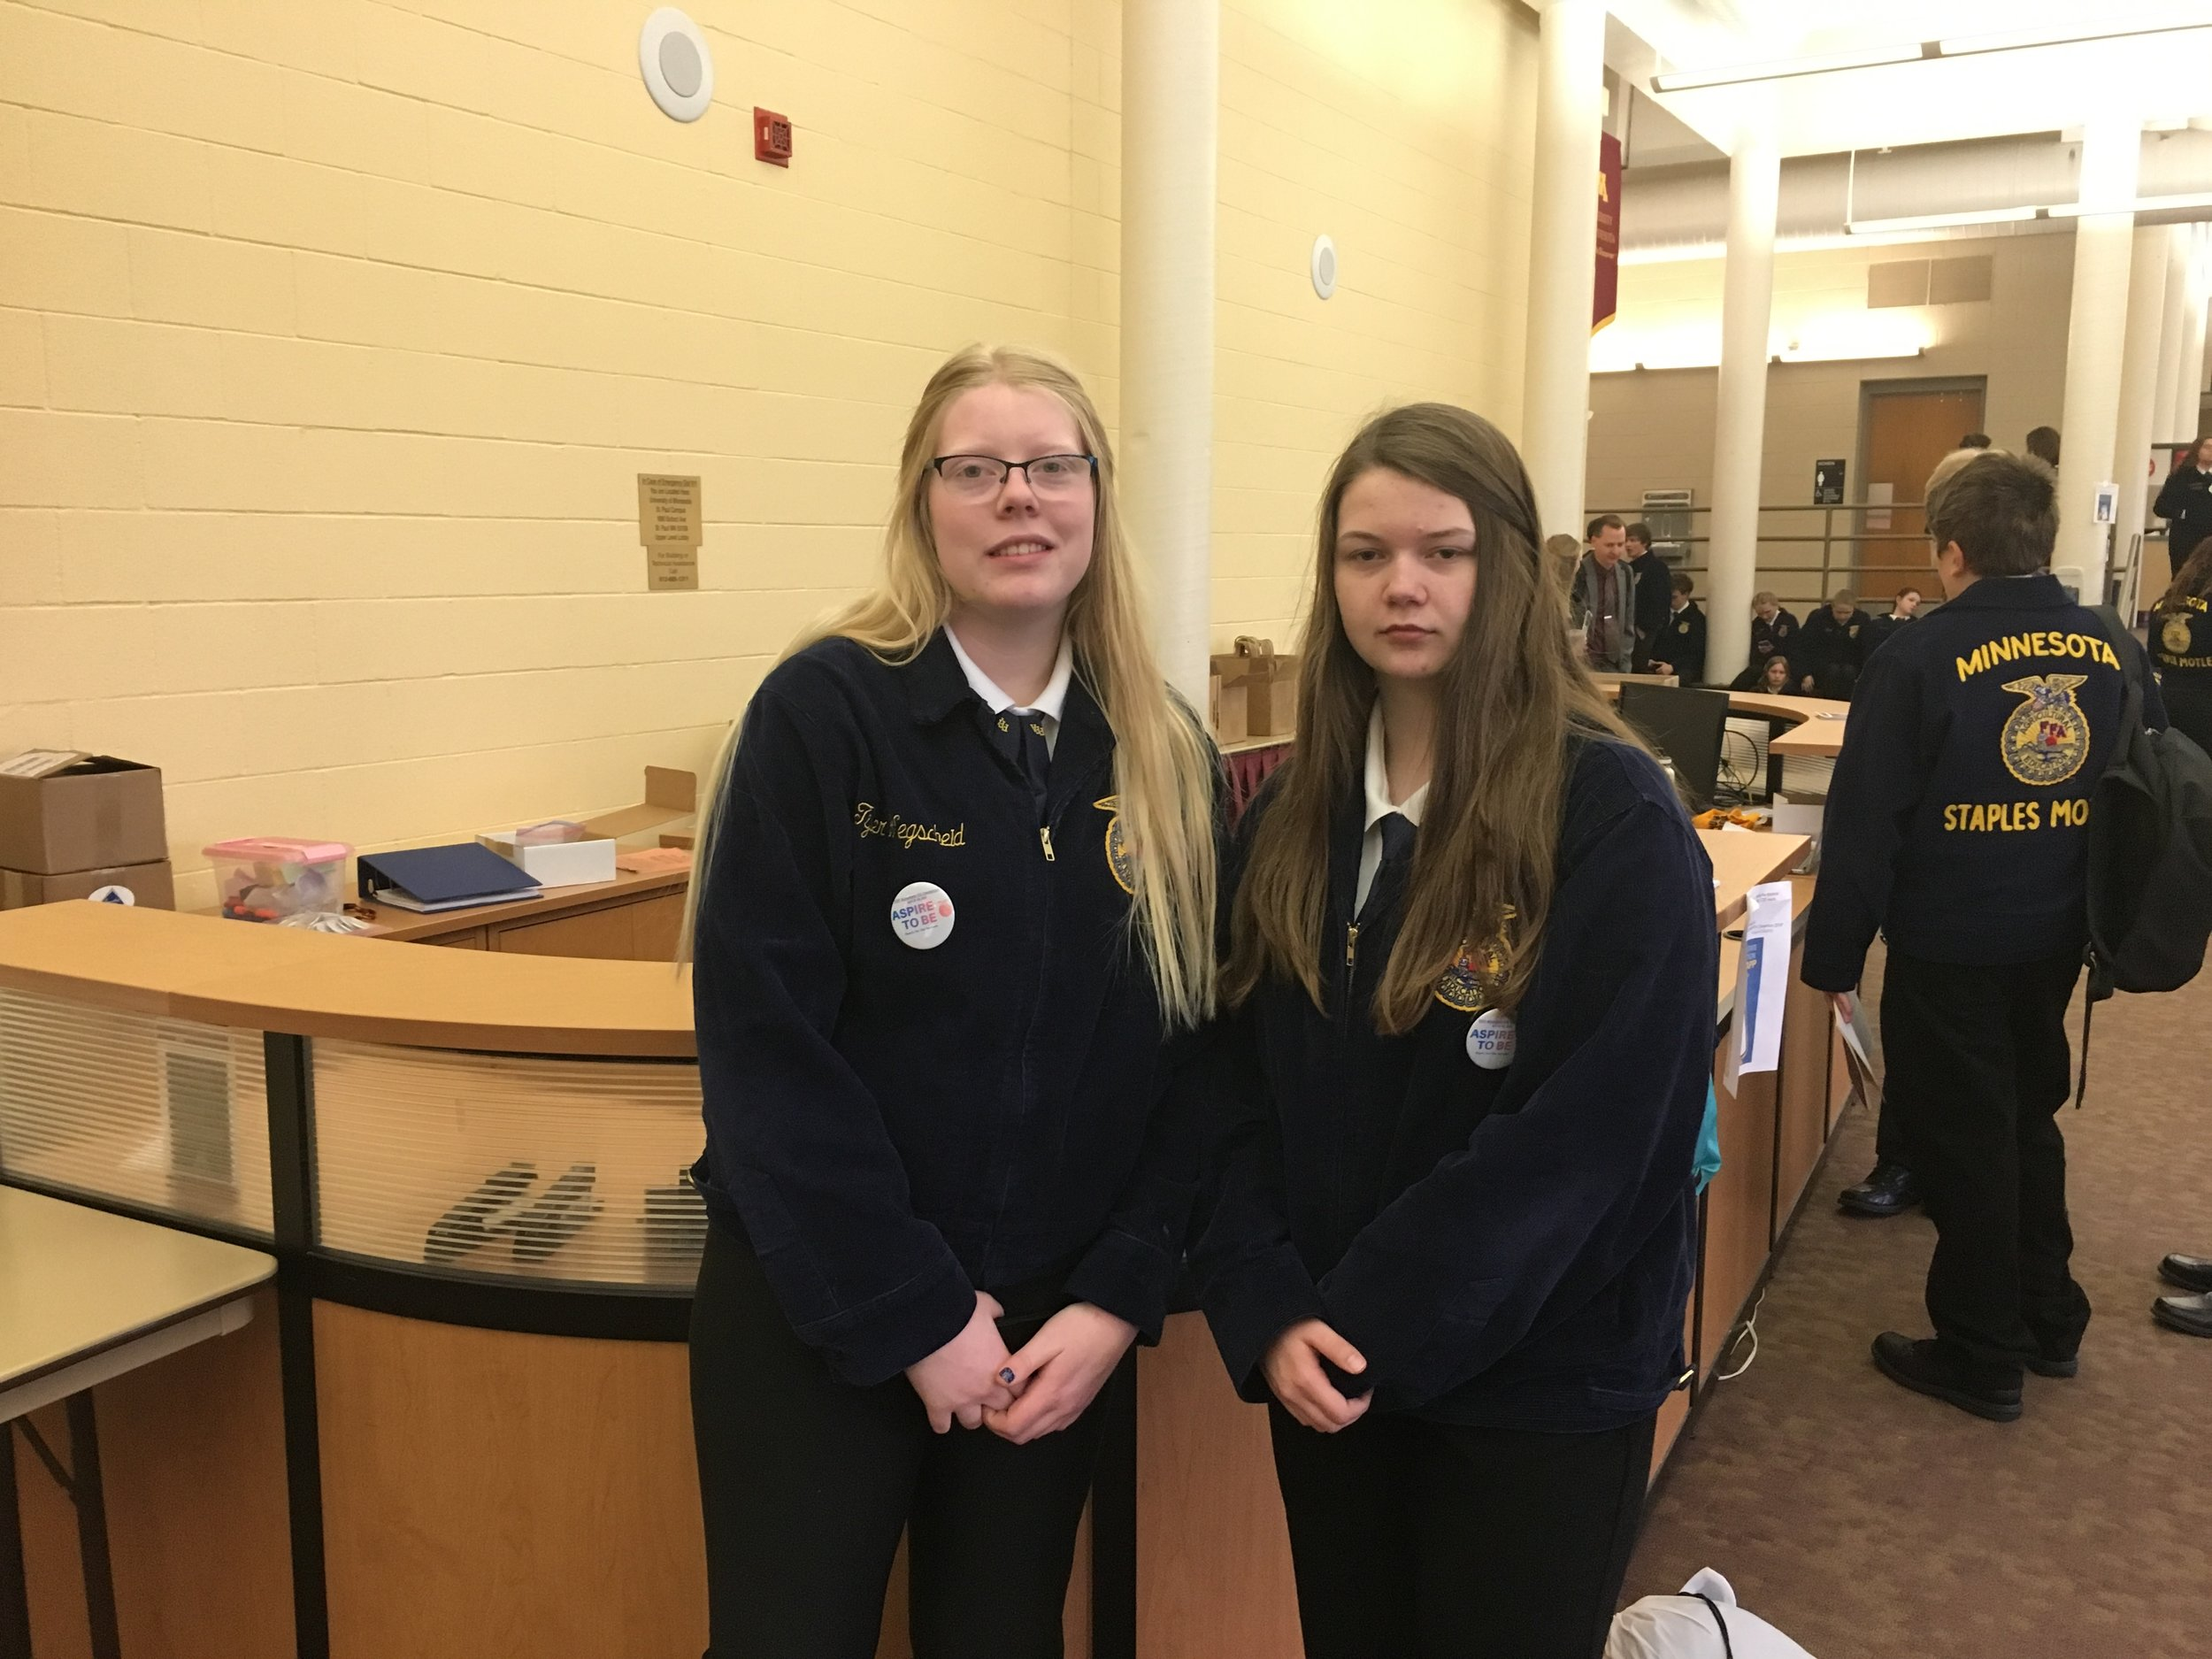 WDC FFA members Morgan Grangruth, left, and Makaylyn Sibert served as Courtesy Corp and Delegates at the 90th Minnesota FFA Convention in Minneapolis. Photo by Richard Muckala, WDC FFA advisor.